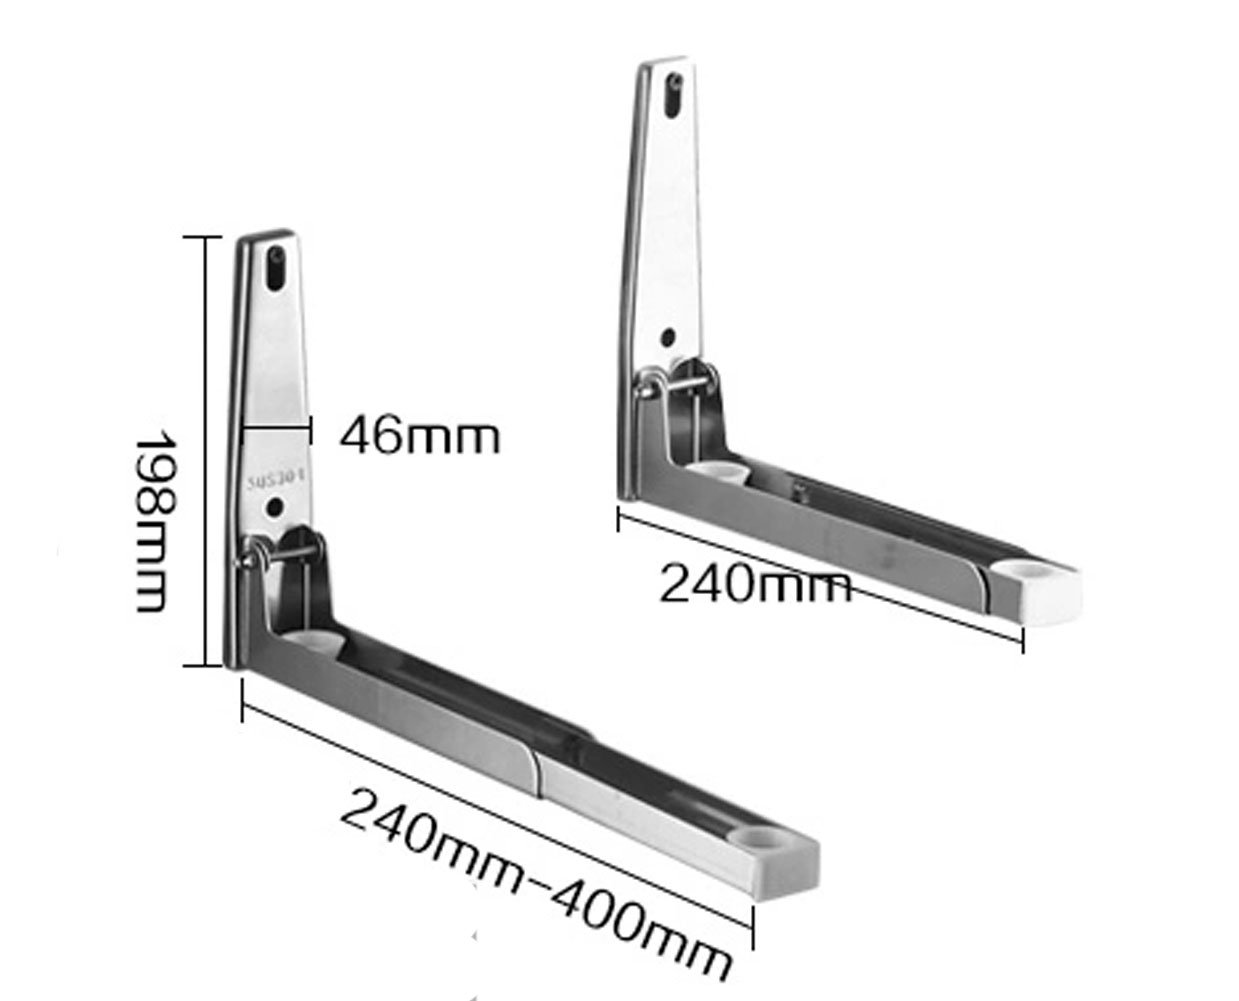 Rykey Sturdy Foldable 304 Stainless Steel Shelf Rack for Microwave Oven Wall Mount Bracket Load 60kg